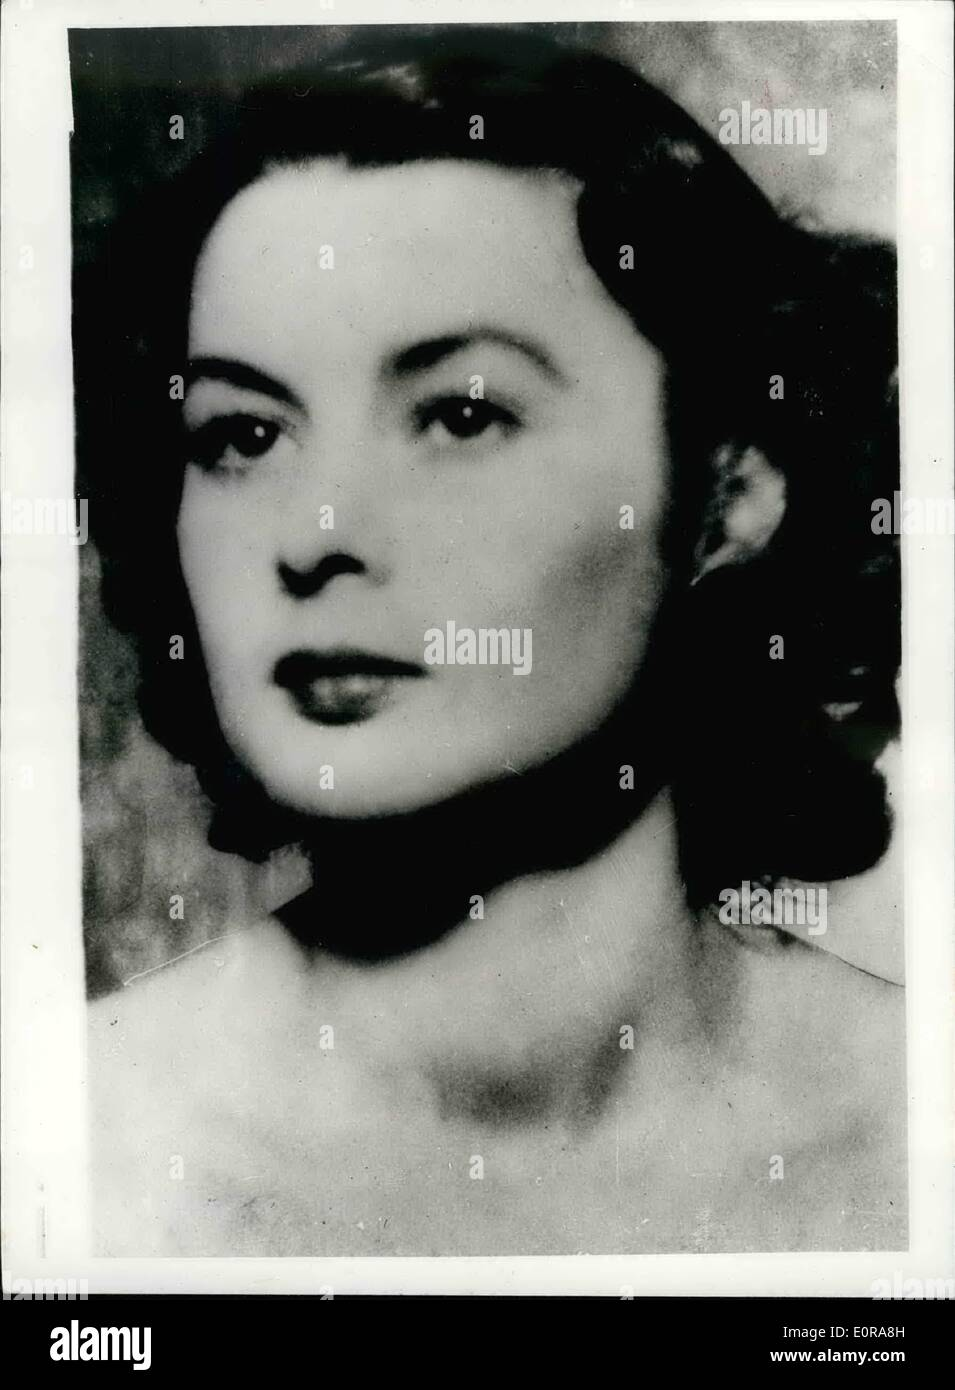 Nov. 11, 1958 - Education grant to orphan daughter of war heroine in danger of being reduced questions in house.: Dame Irene Ward, Tory M.P. for Tynemouth today tabled a motion in the House of Commons. She say that the education grant awarded to Tania Szabo daughter of Legendary Heroine Violette Szabo G.C. is in danger of being reduced.She said that a move was on foot to reduce the grant because a proportion of the royalties on the book and film of the life of Violette Szabo had been voluntarily set aside as a fund for her daughter. Tania is now 15 and lives in Australia with her grandparents - Stock Image